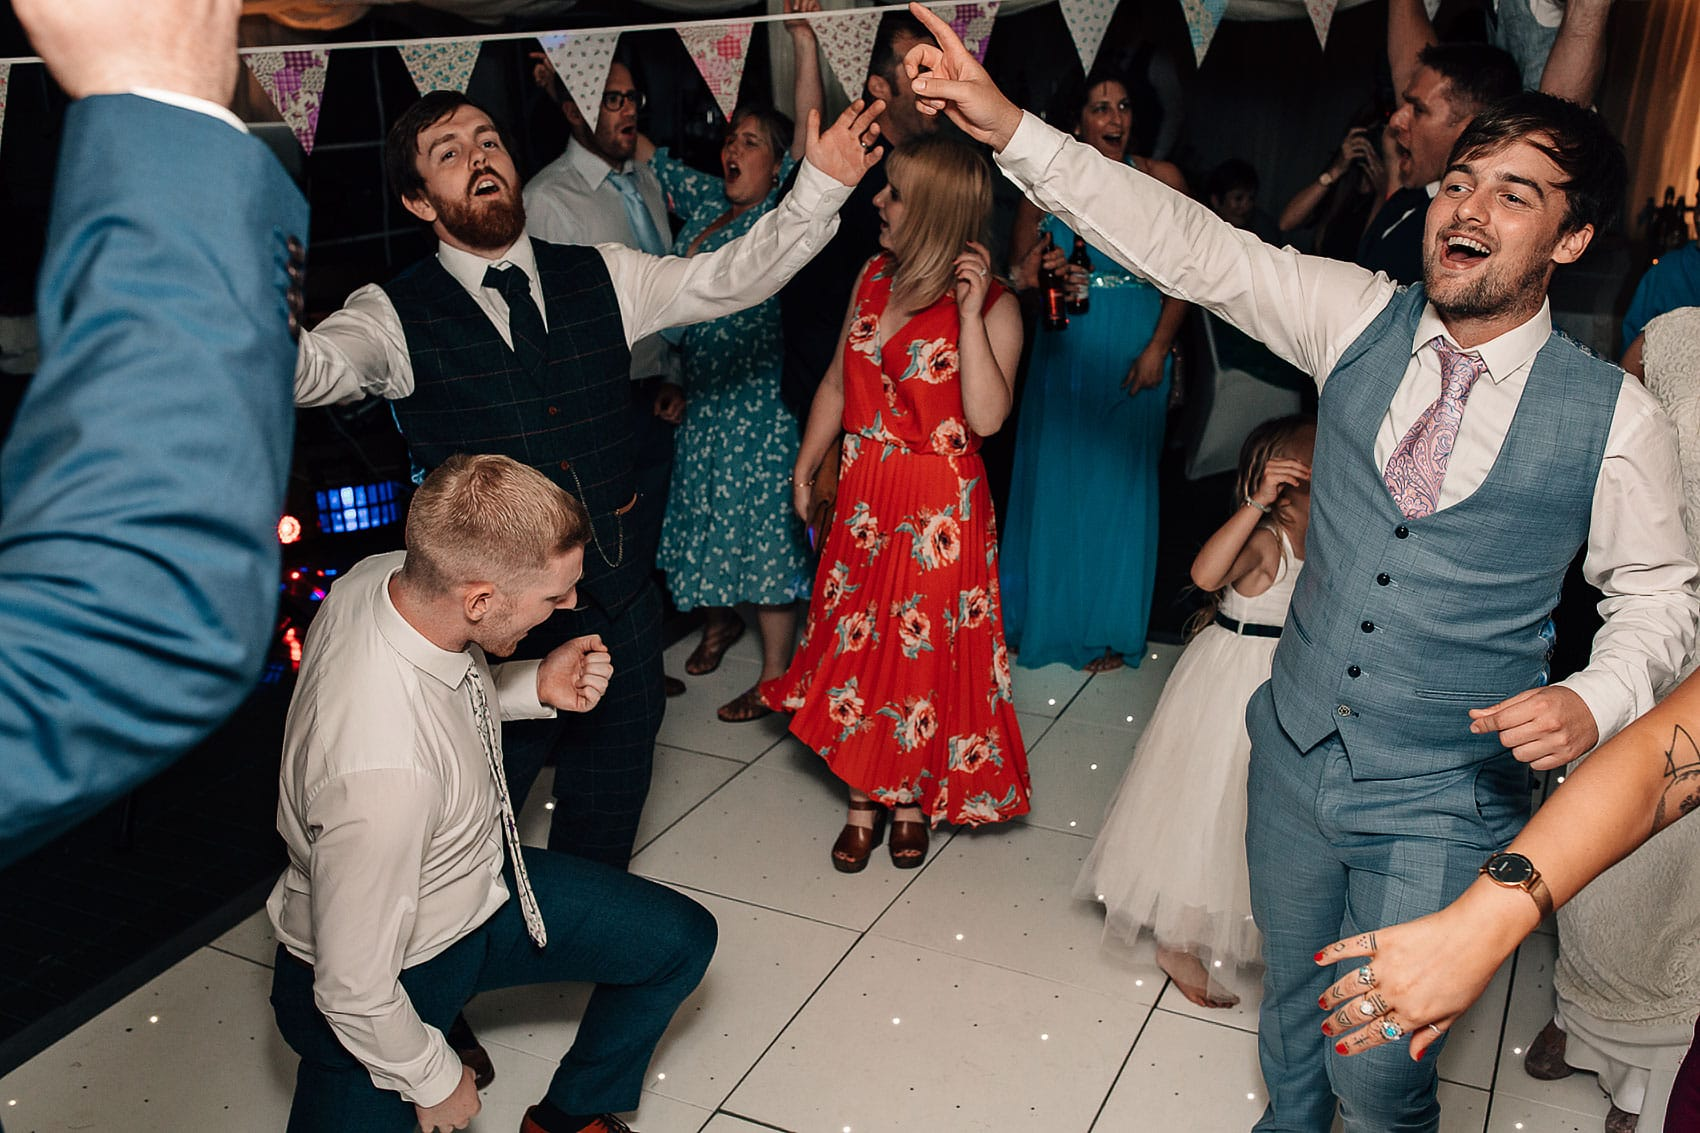 North Yorkshire barn wedding dance-floor